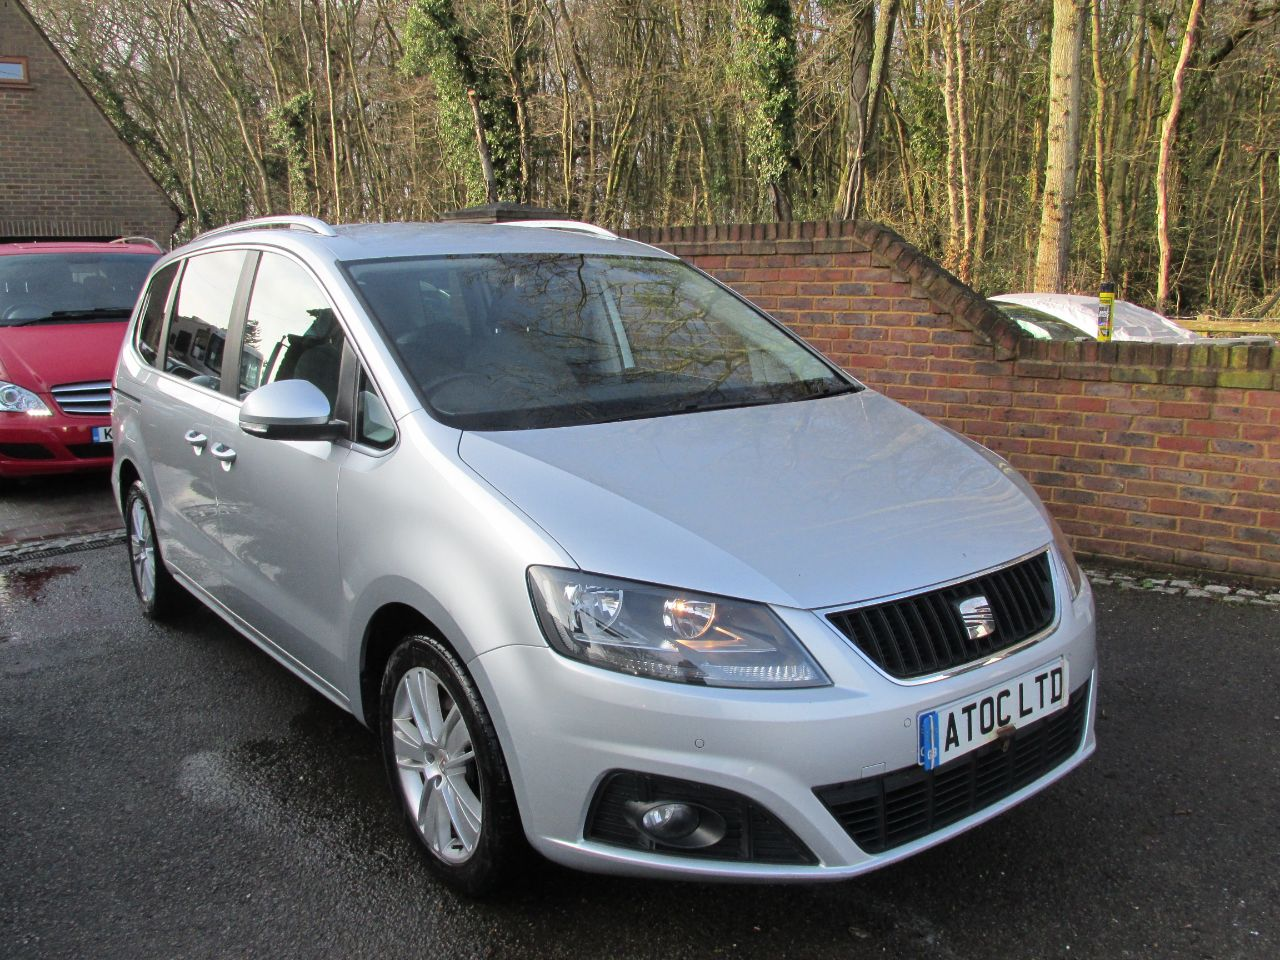 Seat Alhambra 2.0 Tdi Se Ecomotive Dsg Auto 170bhp MPV Diesel Silver at A Touch of Class Kingsnorth